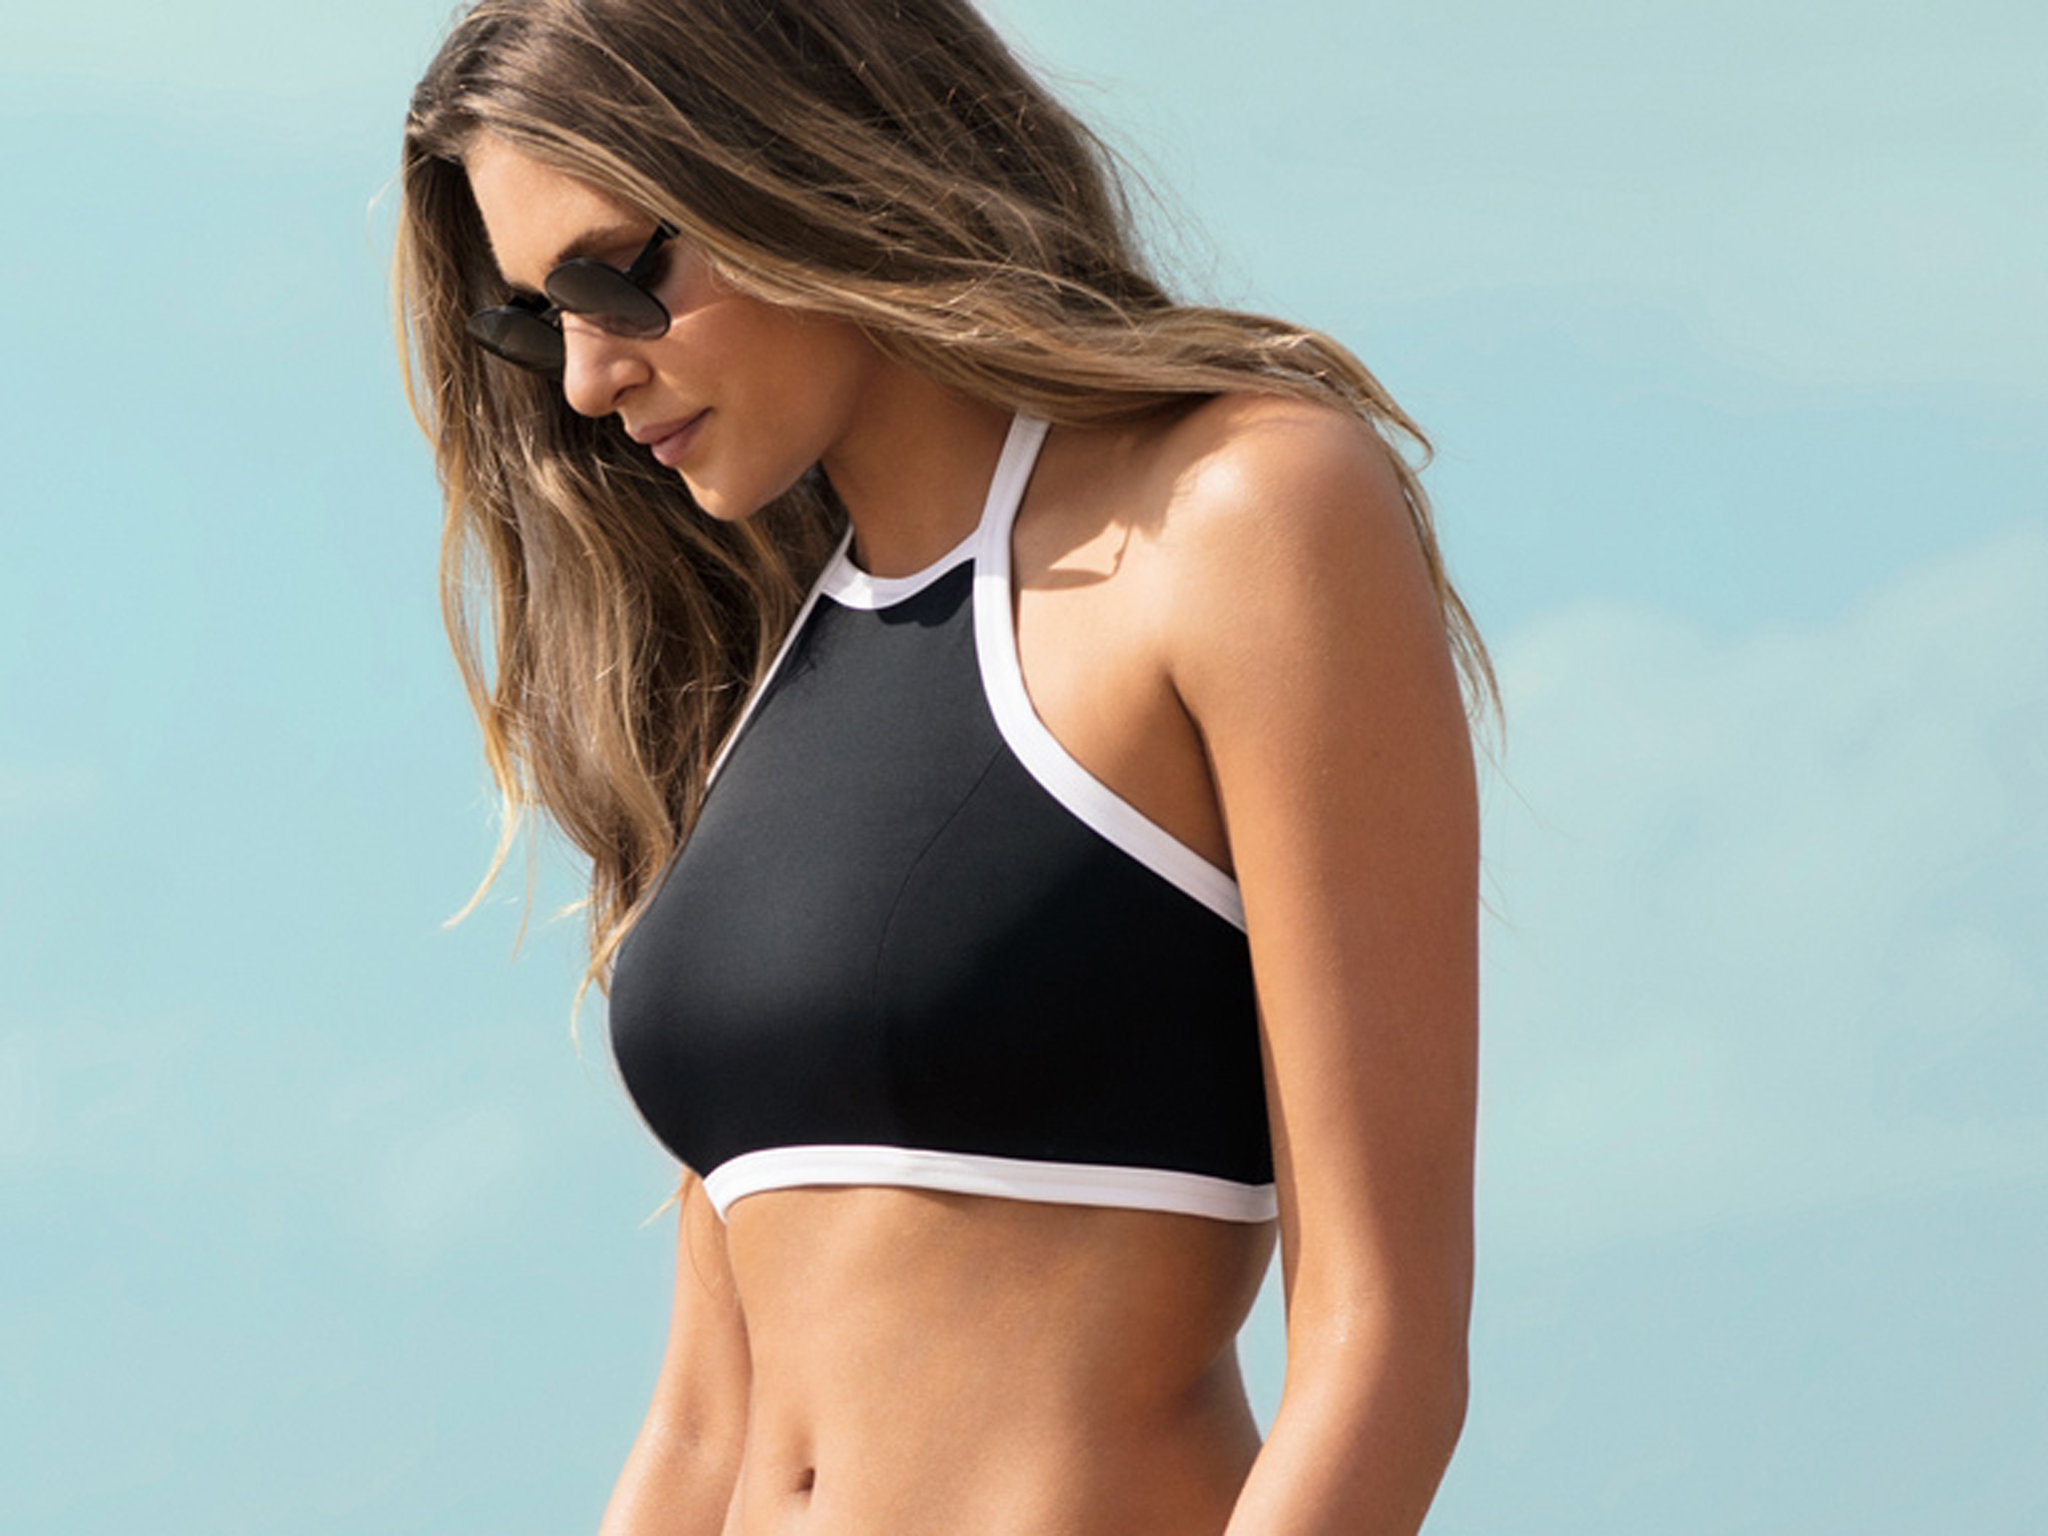 d8febd5cea 9 best bikini brands for larger busts